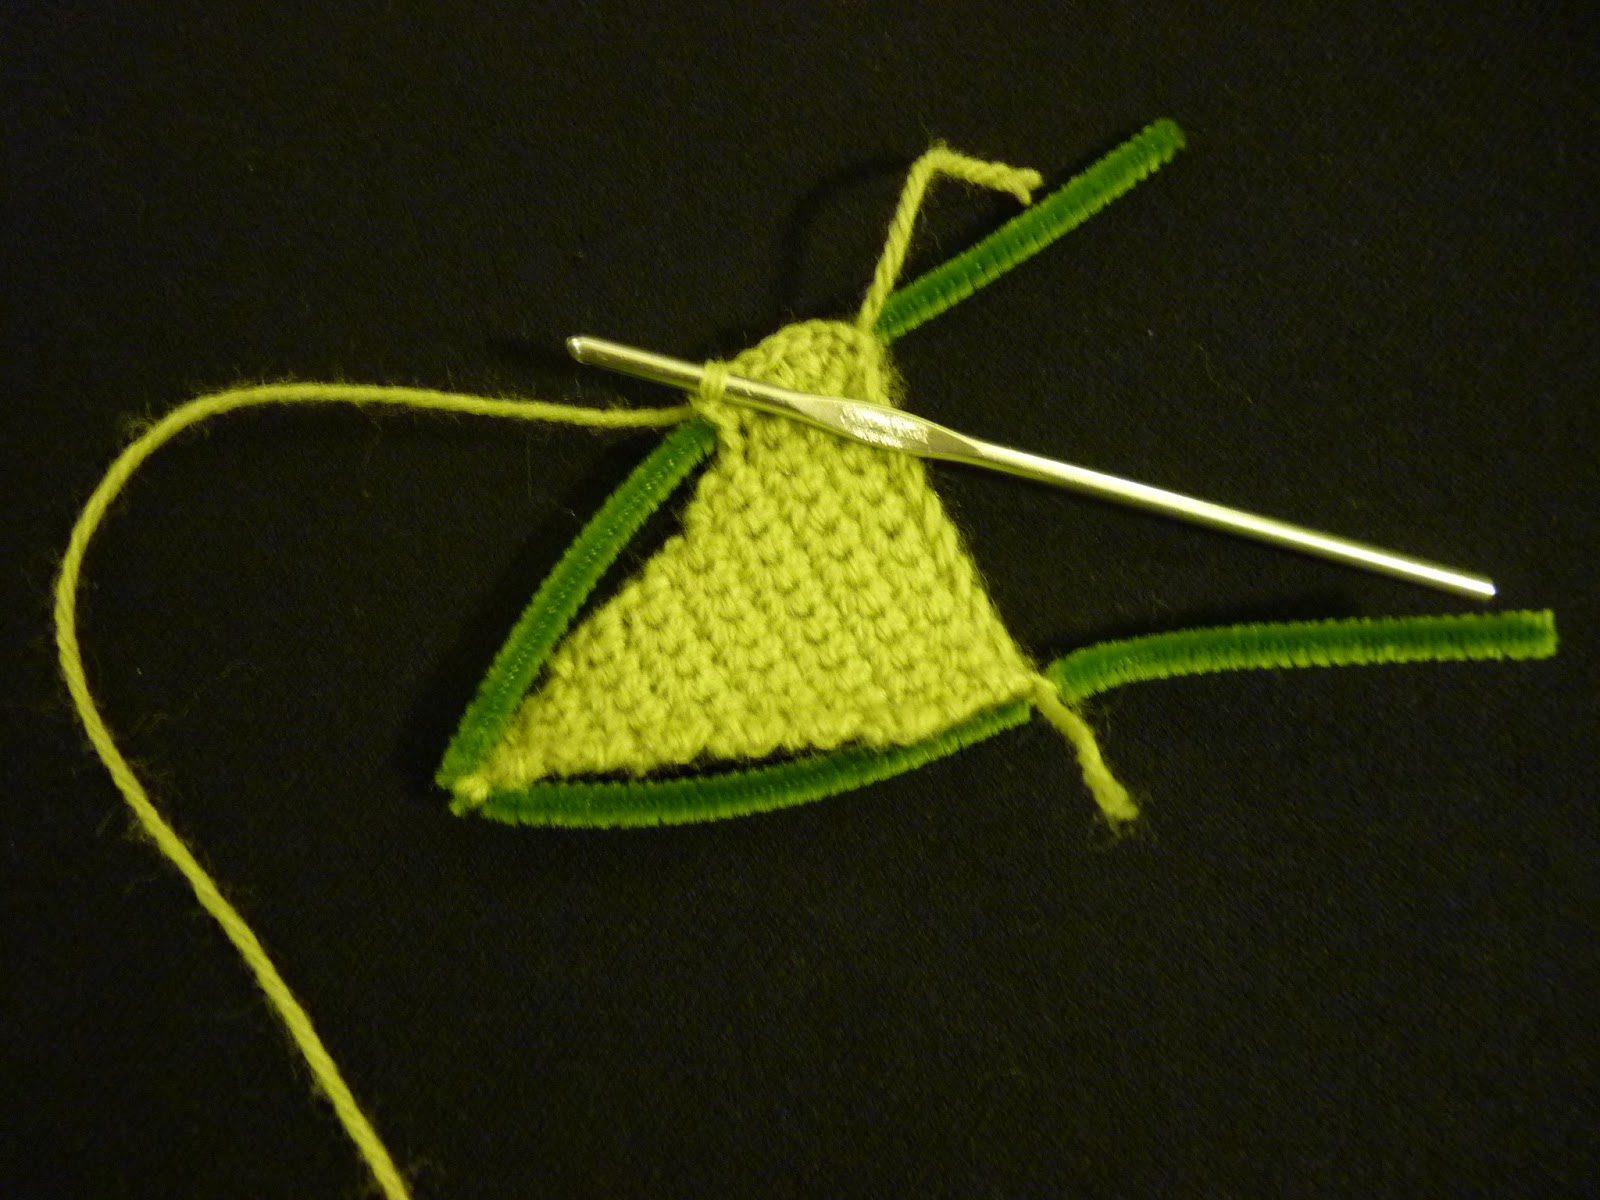 Crochet Pattern Yoda Ears : A Little Dancer: Pinterest Project: Crocheted Yoda Hat ...